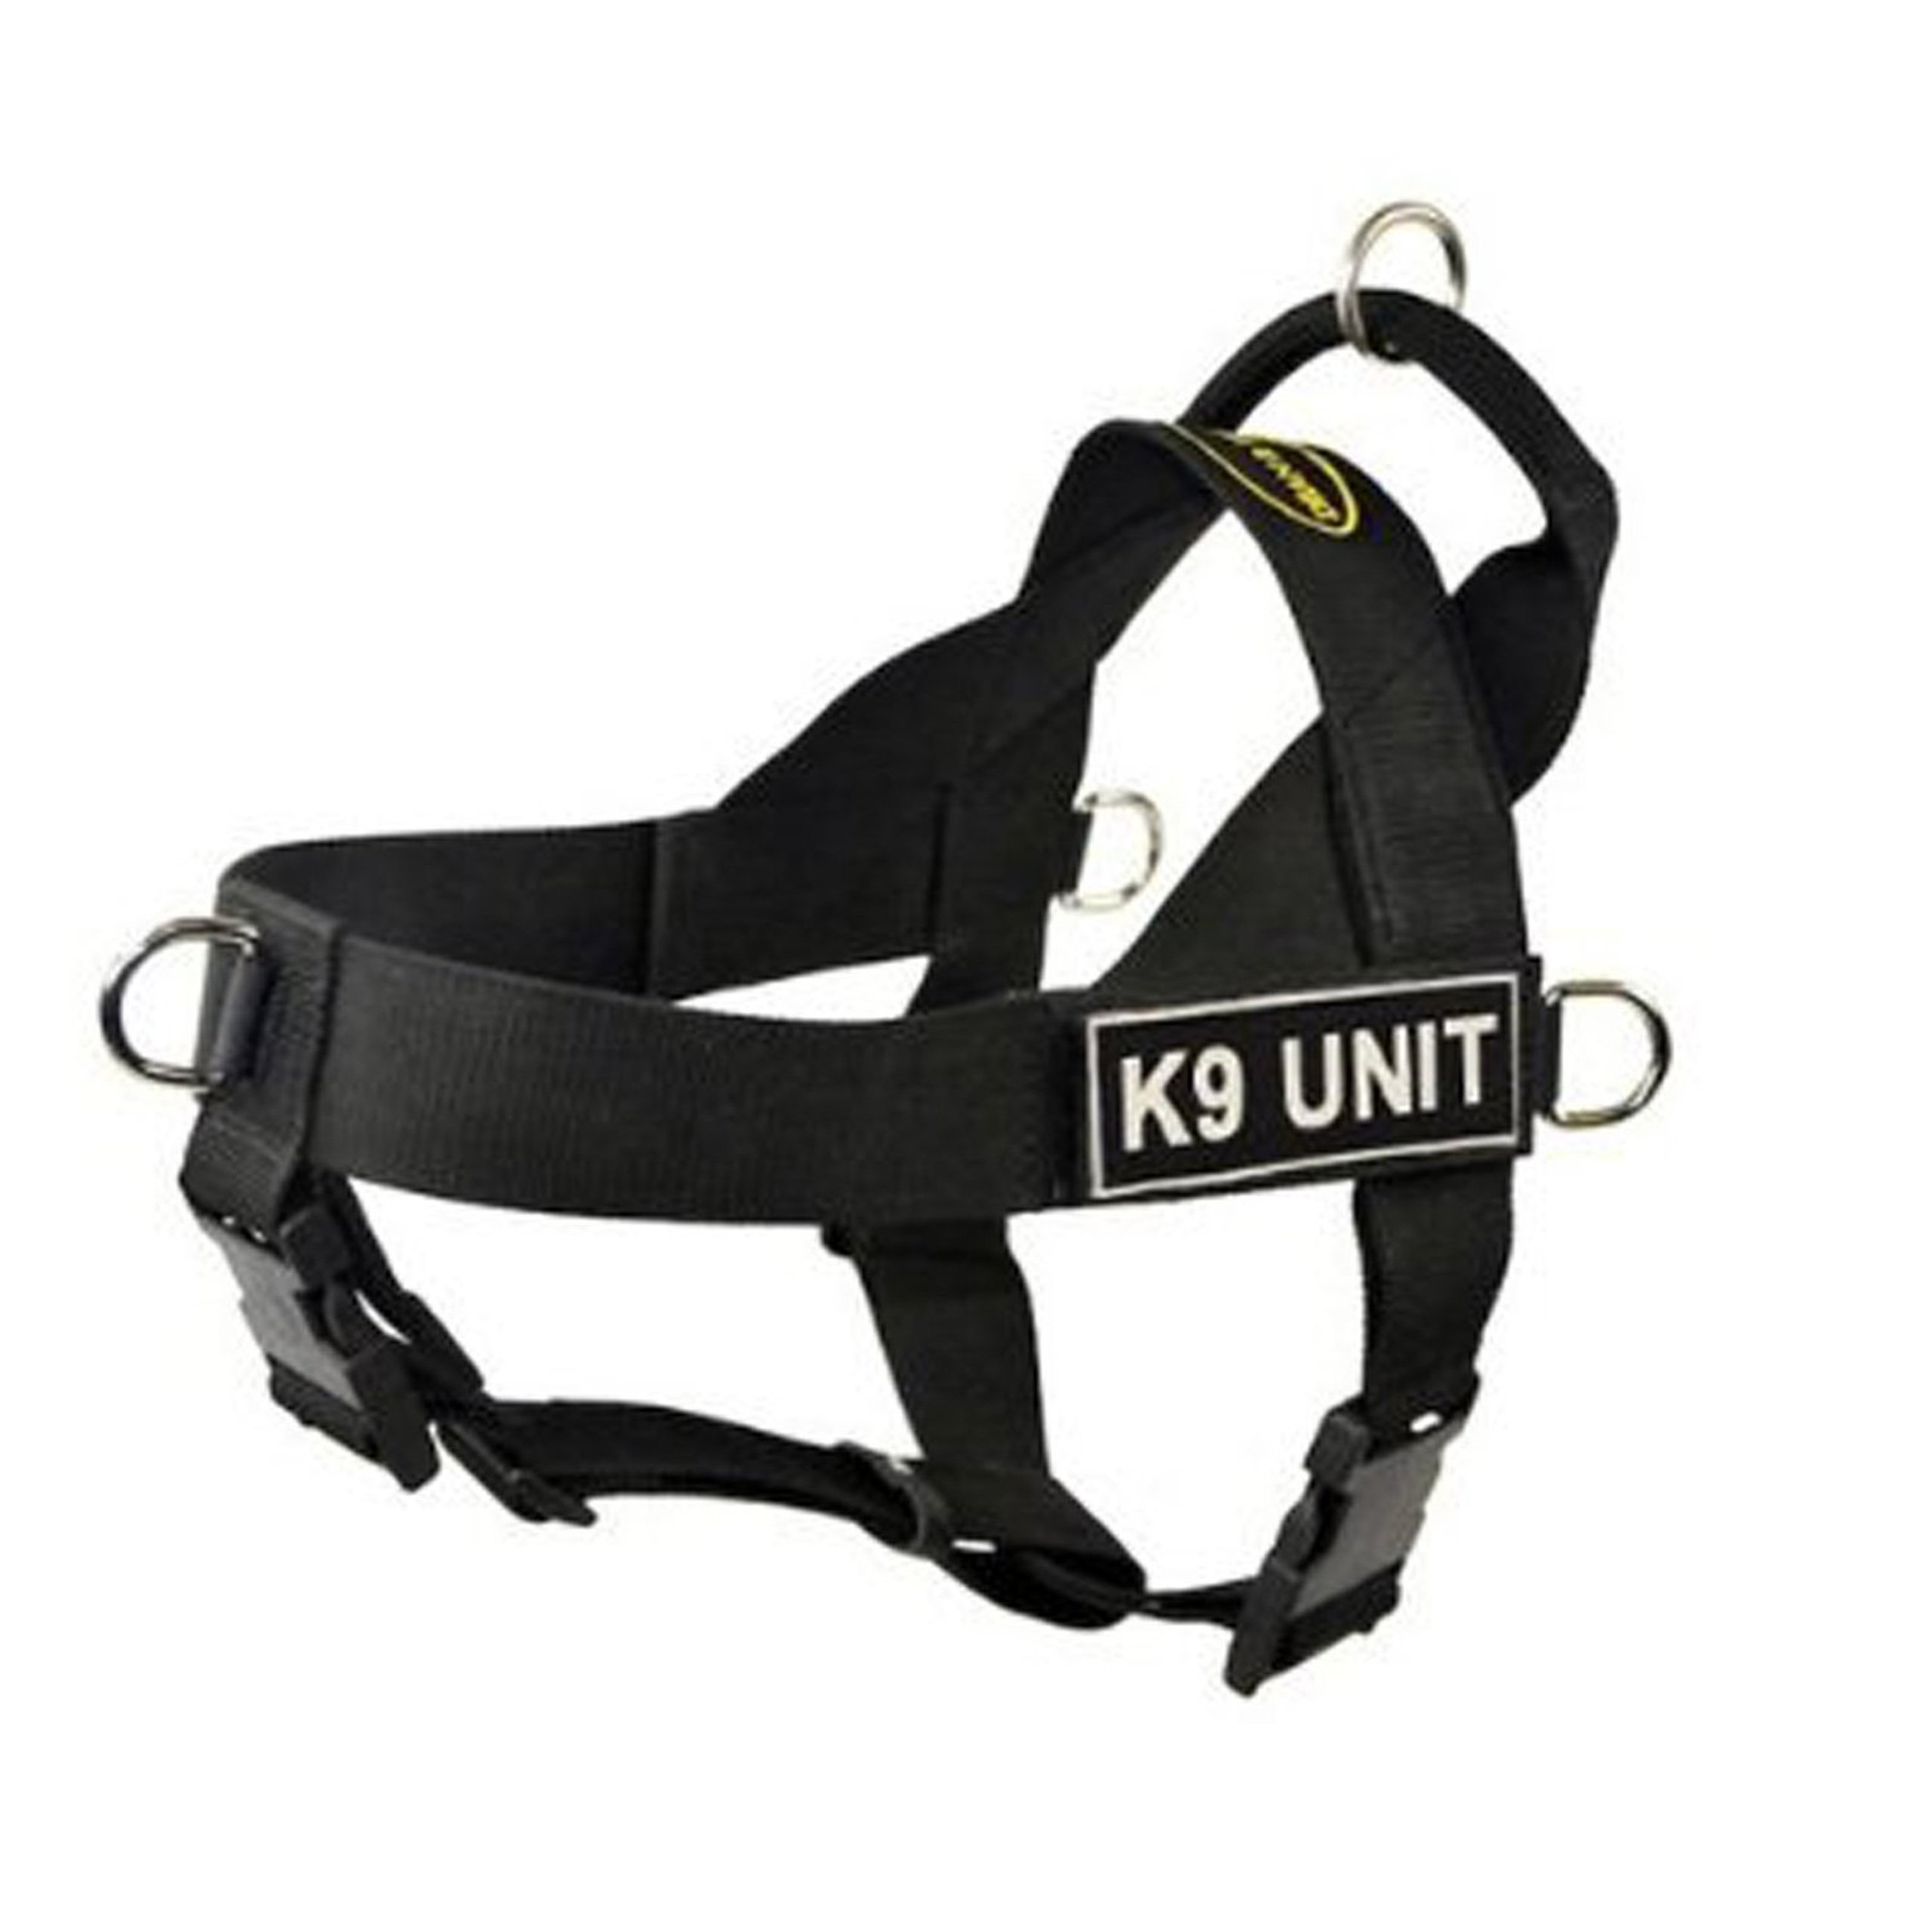 DT Universal No Pull Dog Harness, K9 Unit, Black, Large, Fits Girth Size: 31-Inch to 42-Inch